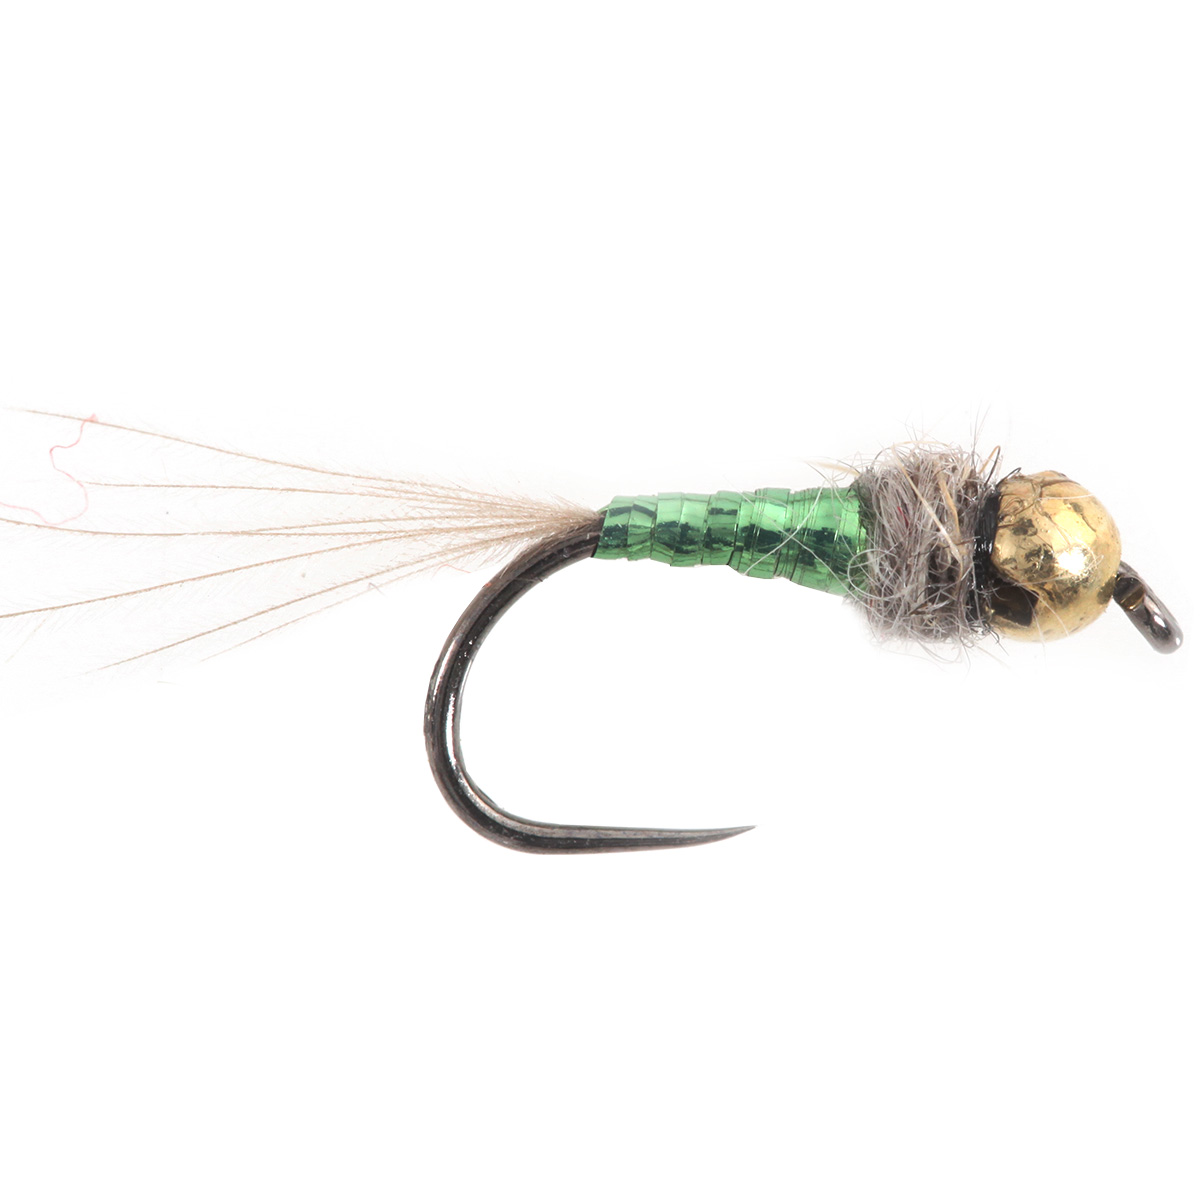 Tungsten BH Micro Nymph Sparkle Green